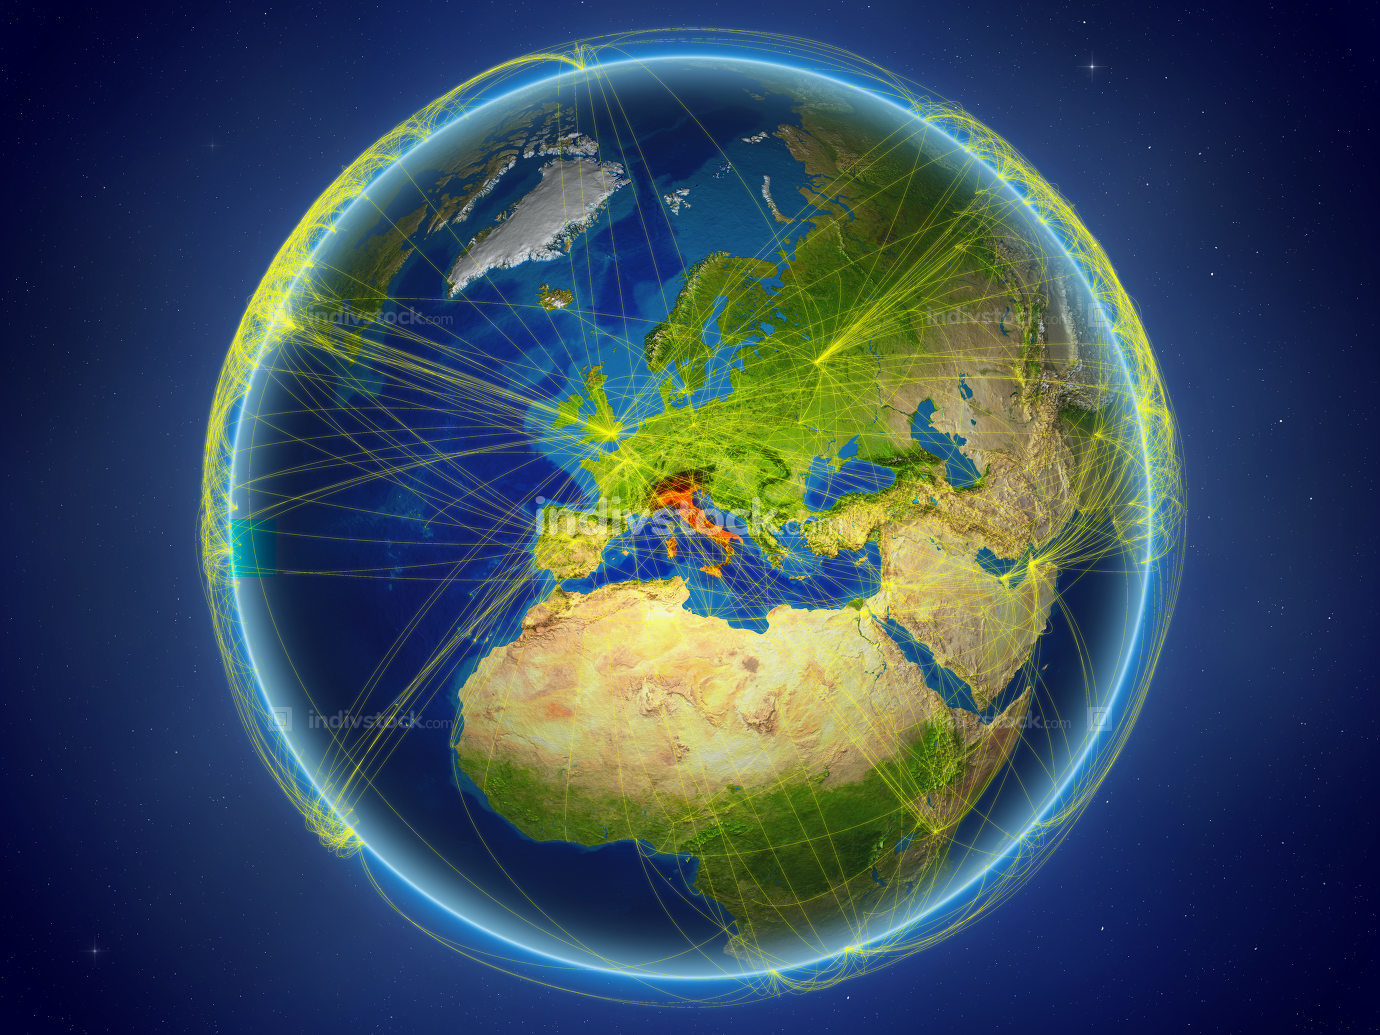 Italy on Earth with networks